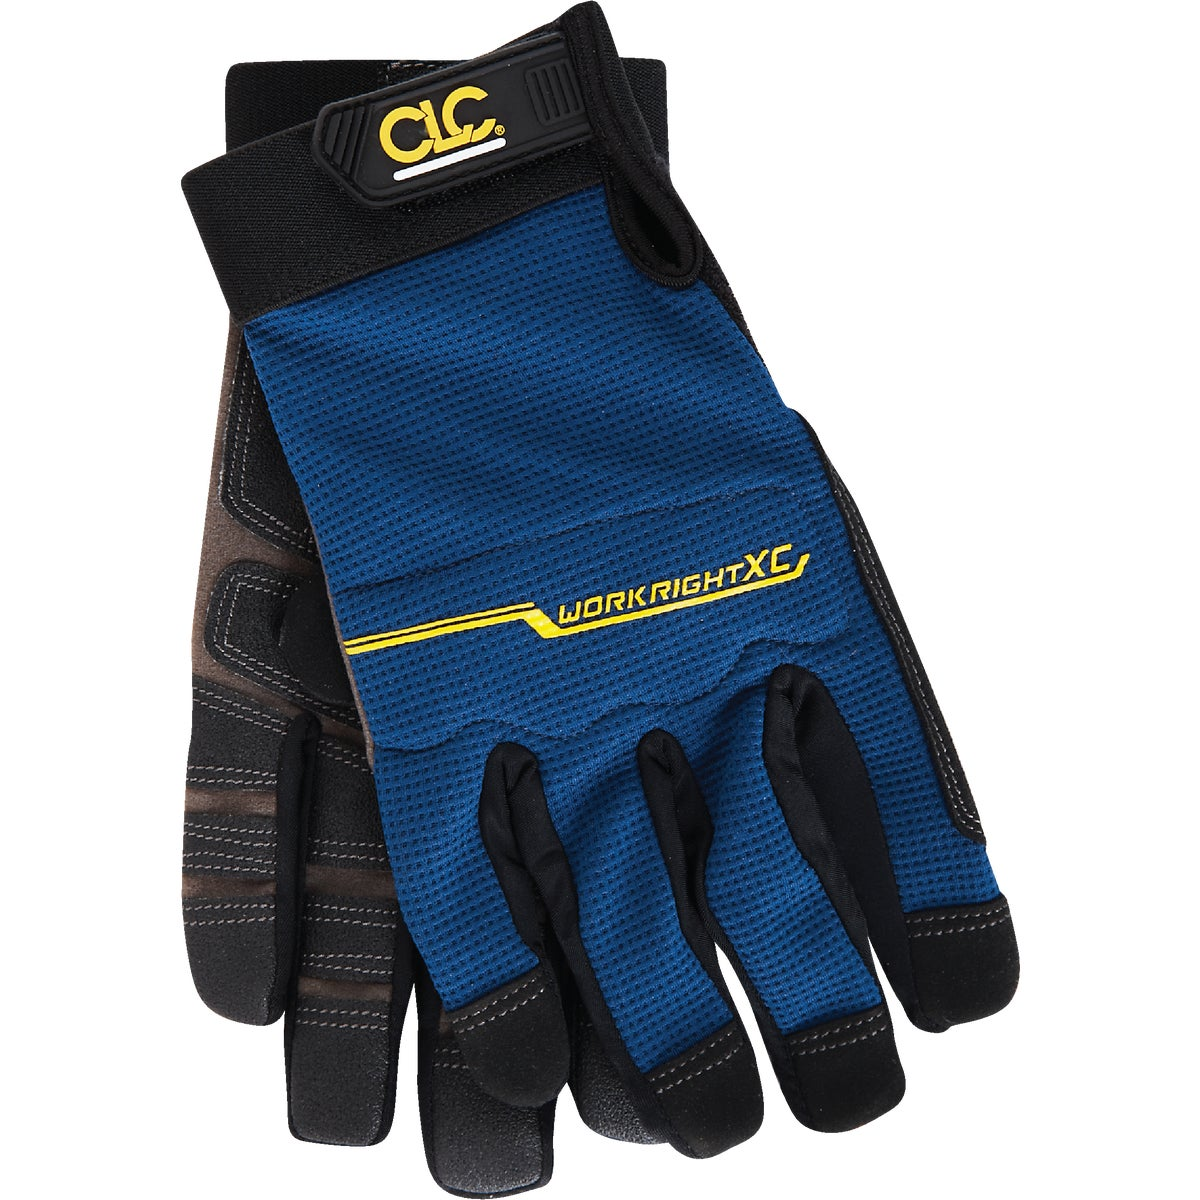 MED WORKRIGHT XC GLOVE